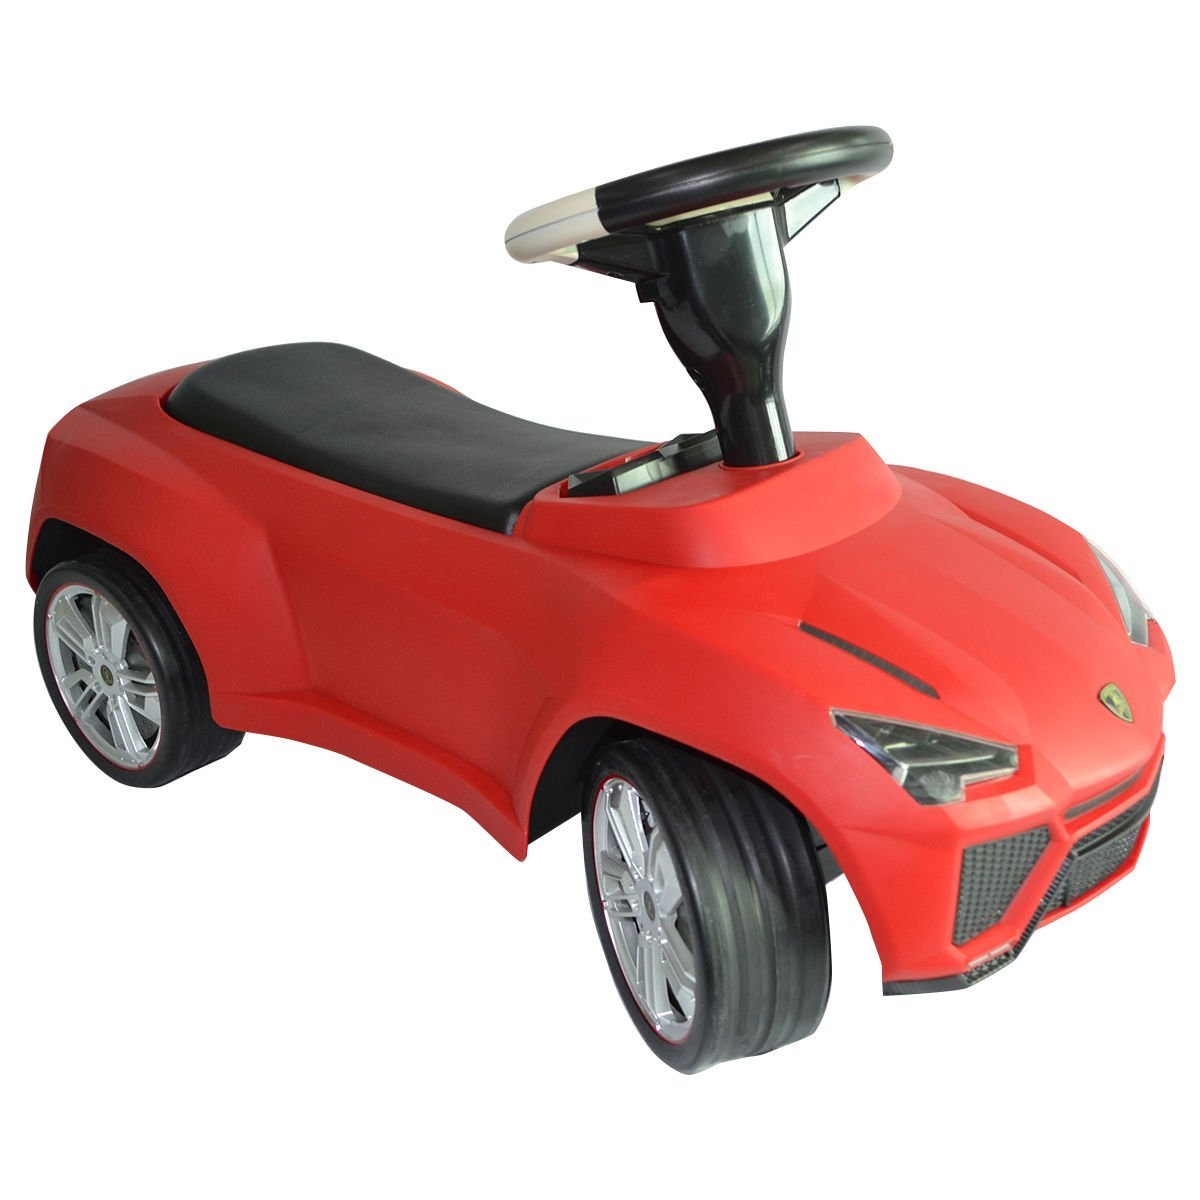 New MTN-G Licensed Lamborghini Urus Kids Ride On Push Car Toddler Baby Walker Toy Red